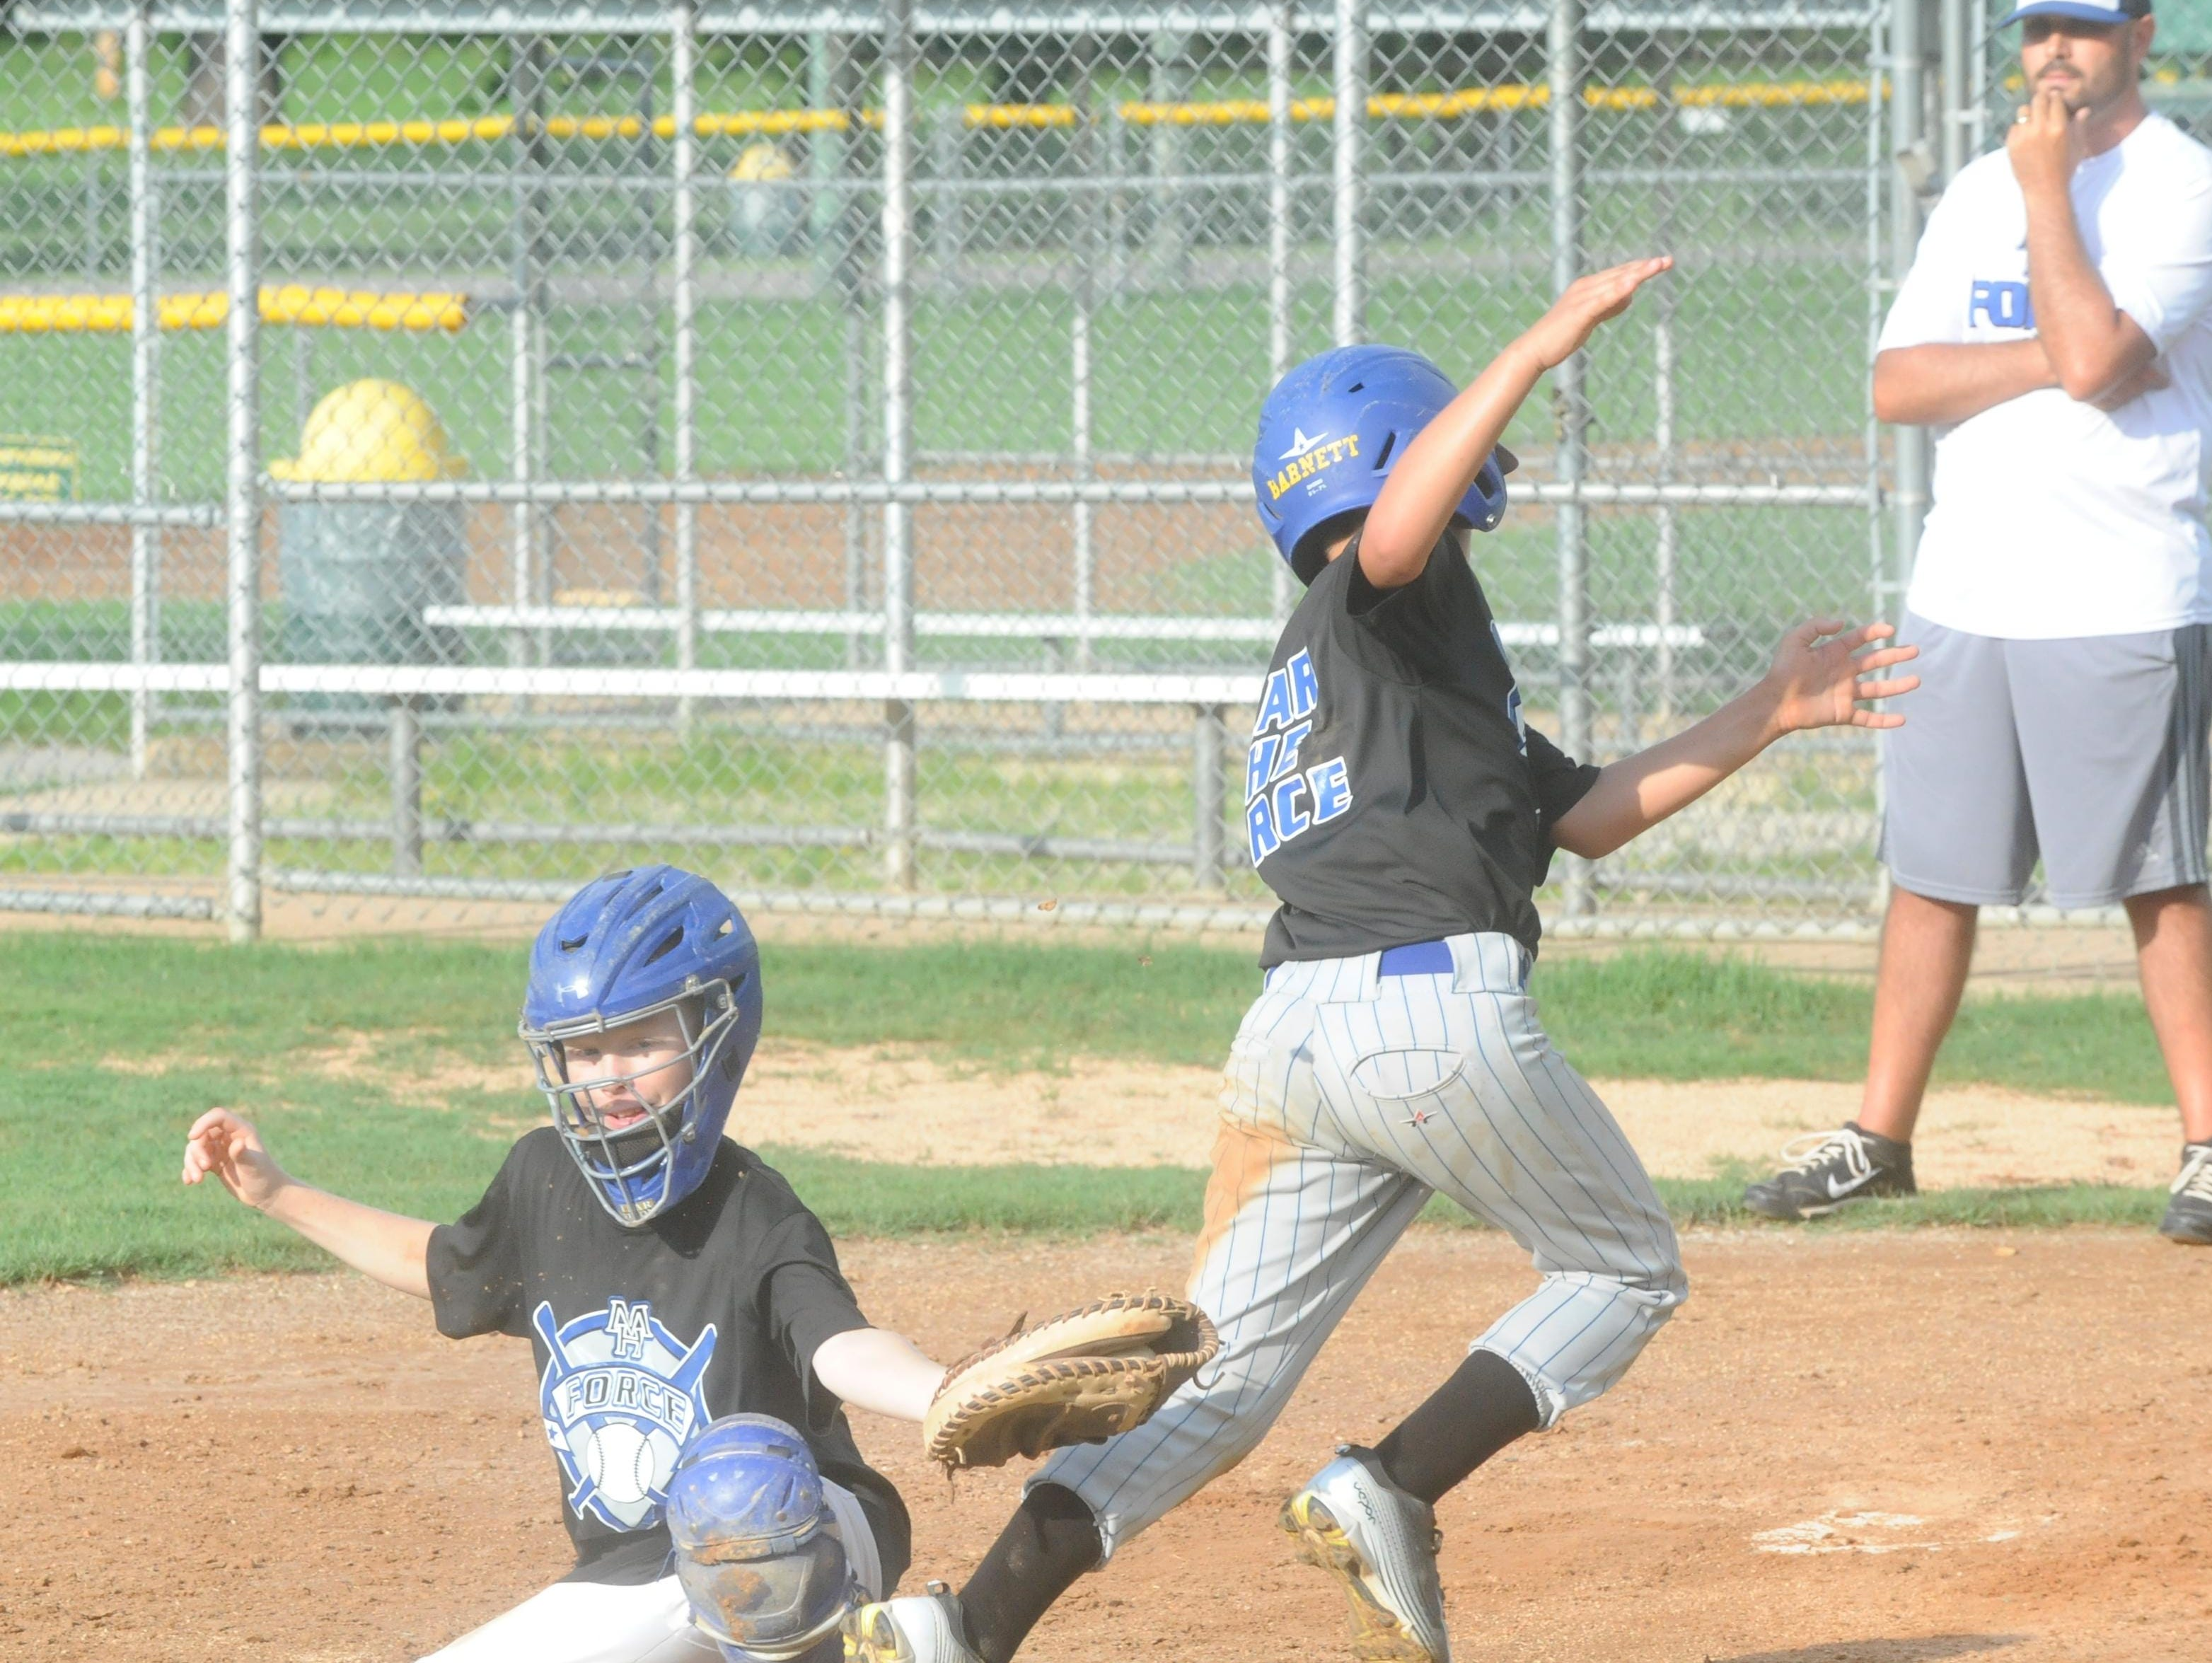 Mountain Home Force catcher Cody Lance, left, attempts to tag teammate Brady Barnett in a recent practice at Clysta Willett Park. The 10-year-old all-star team will play at the Cal Ripken World Series on Aug. 8-15 in Jonesboro.